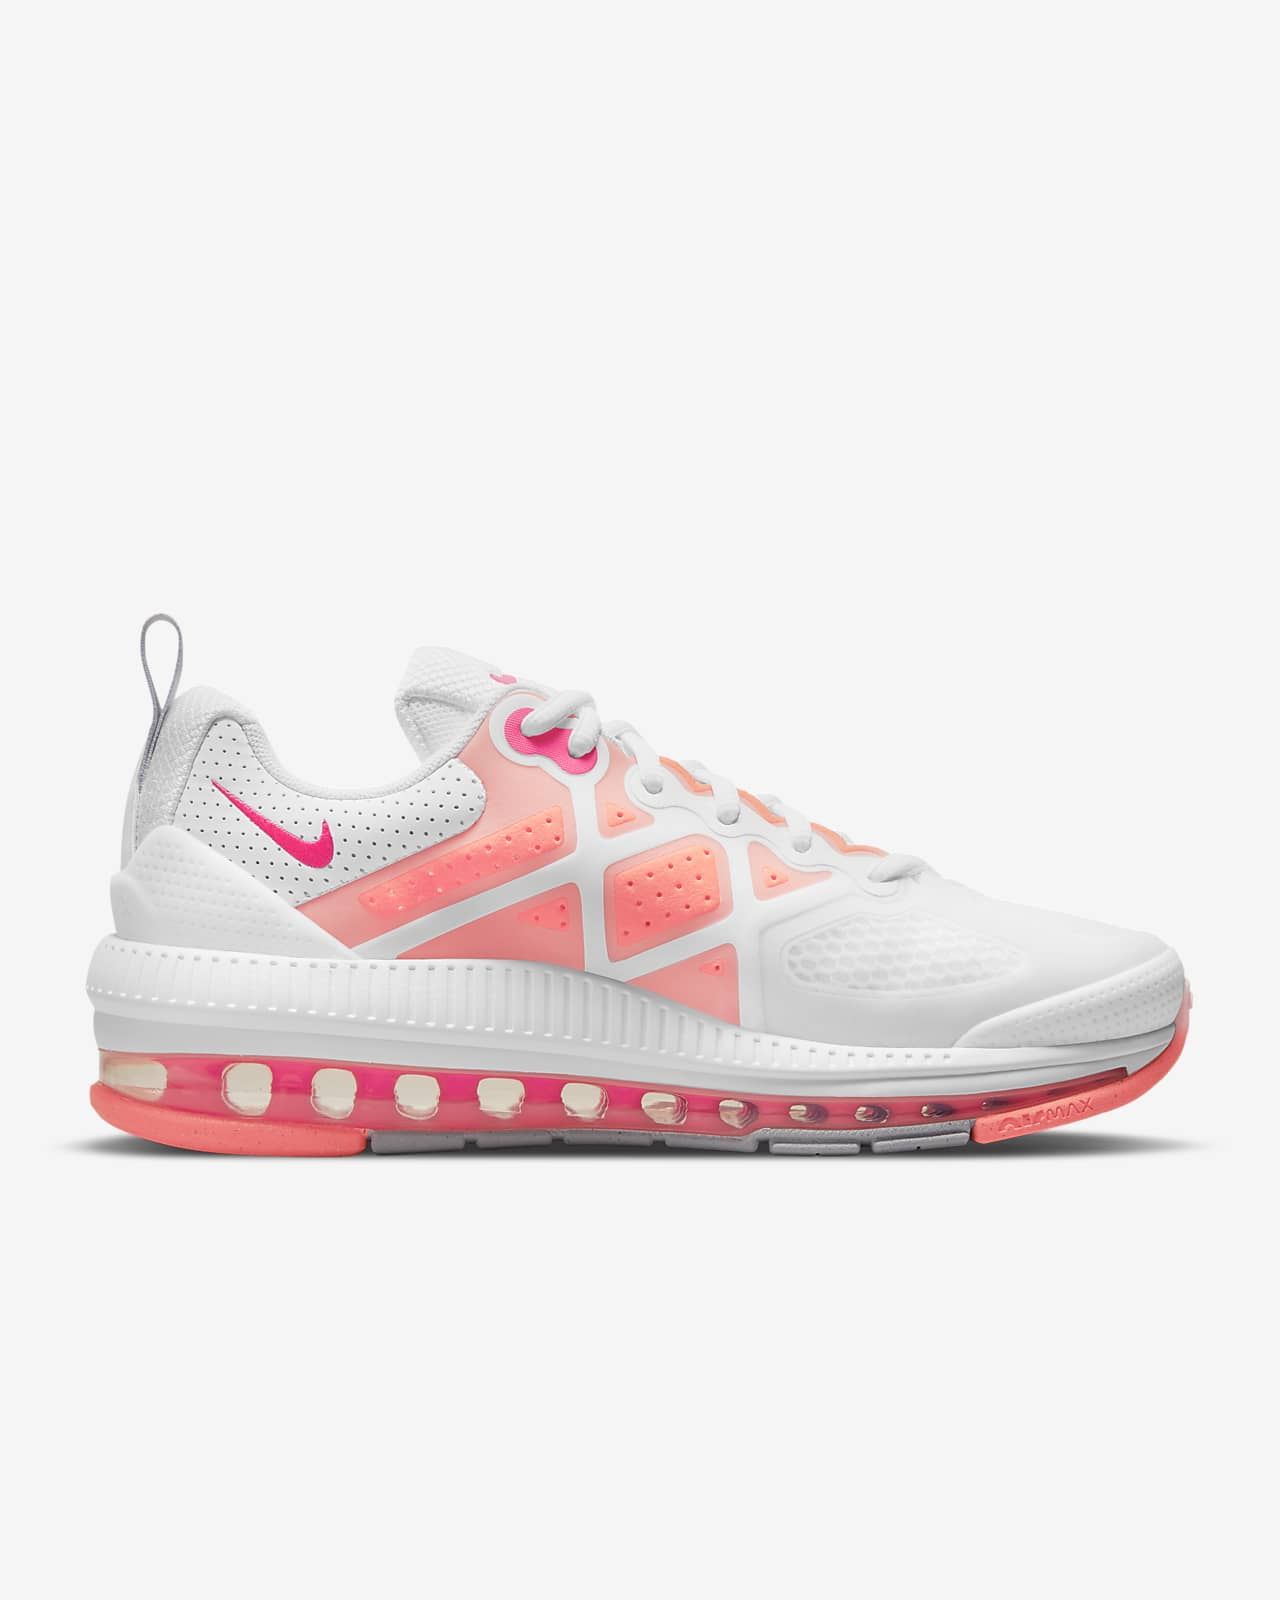 Chaussure Nike Air Max Genome pour Femme